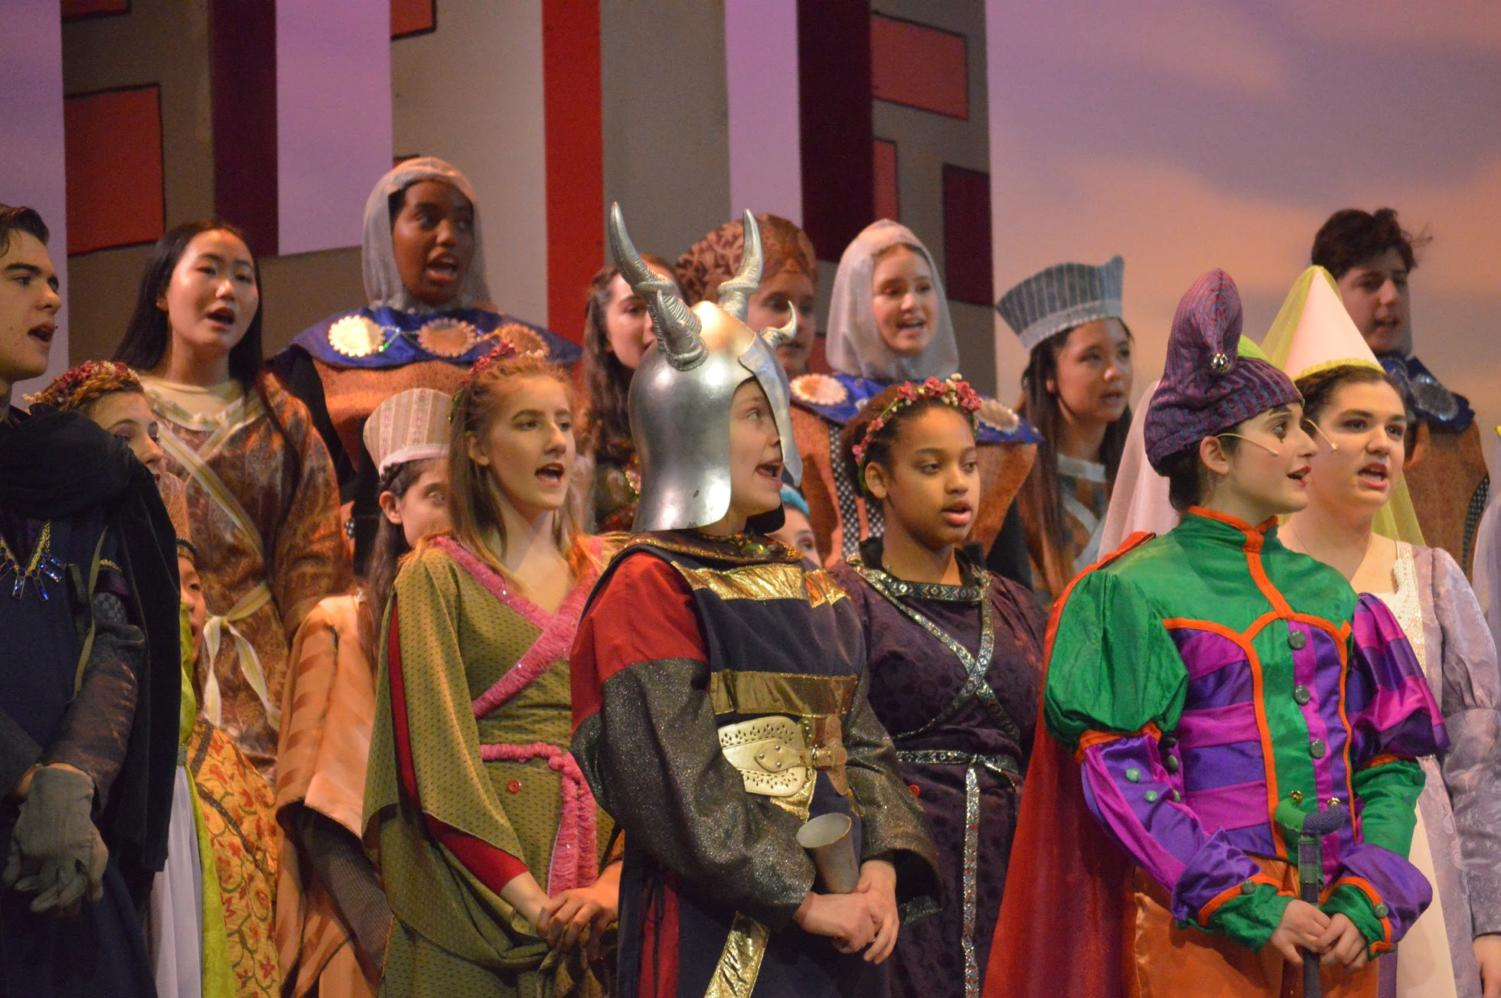 Cast of Once Upon A Mattress during their show during March 2019.